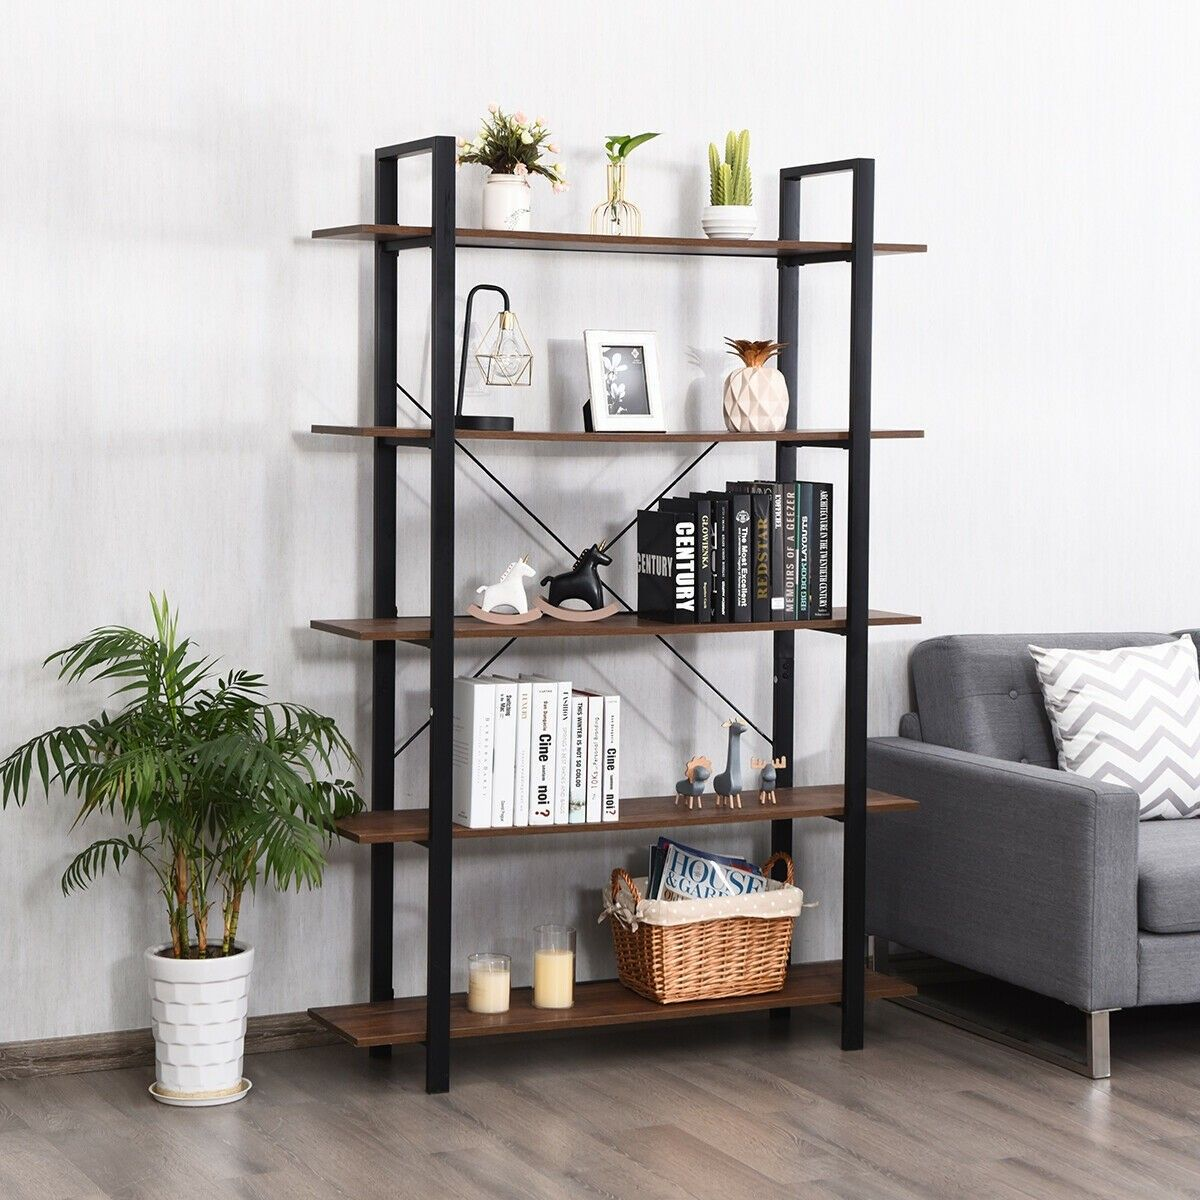 5 Tiers Bookshelf Industrial Bookcases Metal Frame Shelf Stand 129 95 Free Shipping It Is Made Of P2 Gr Metal Bookcase Rustic Bookshelf Industrial Bookcases